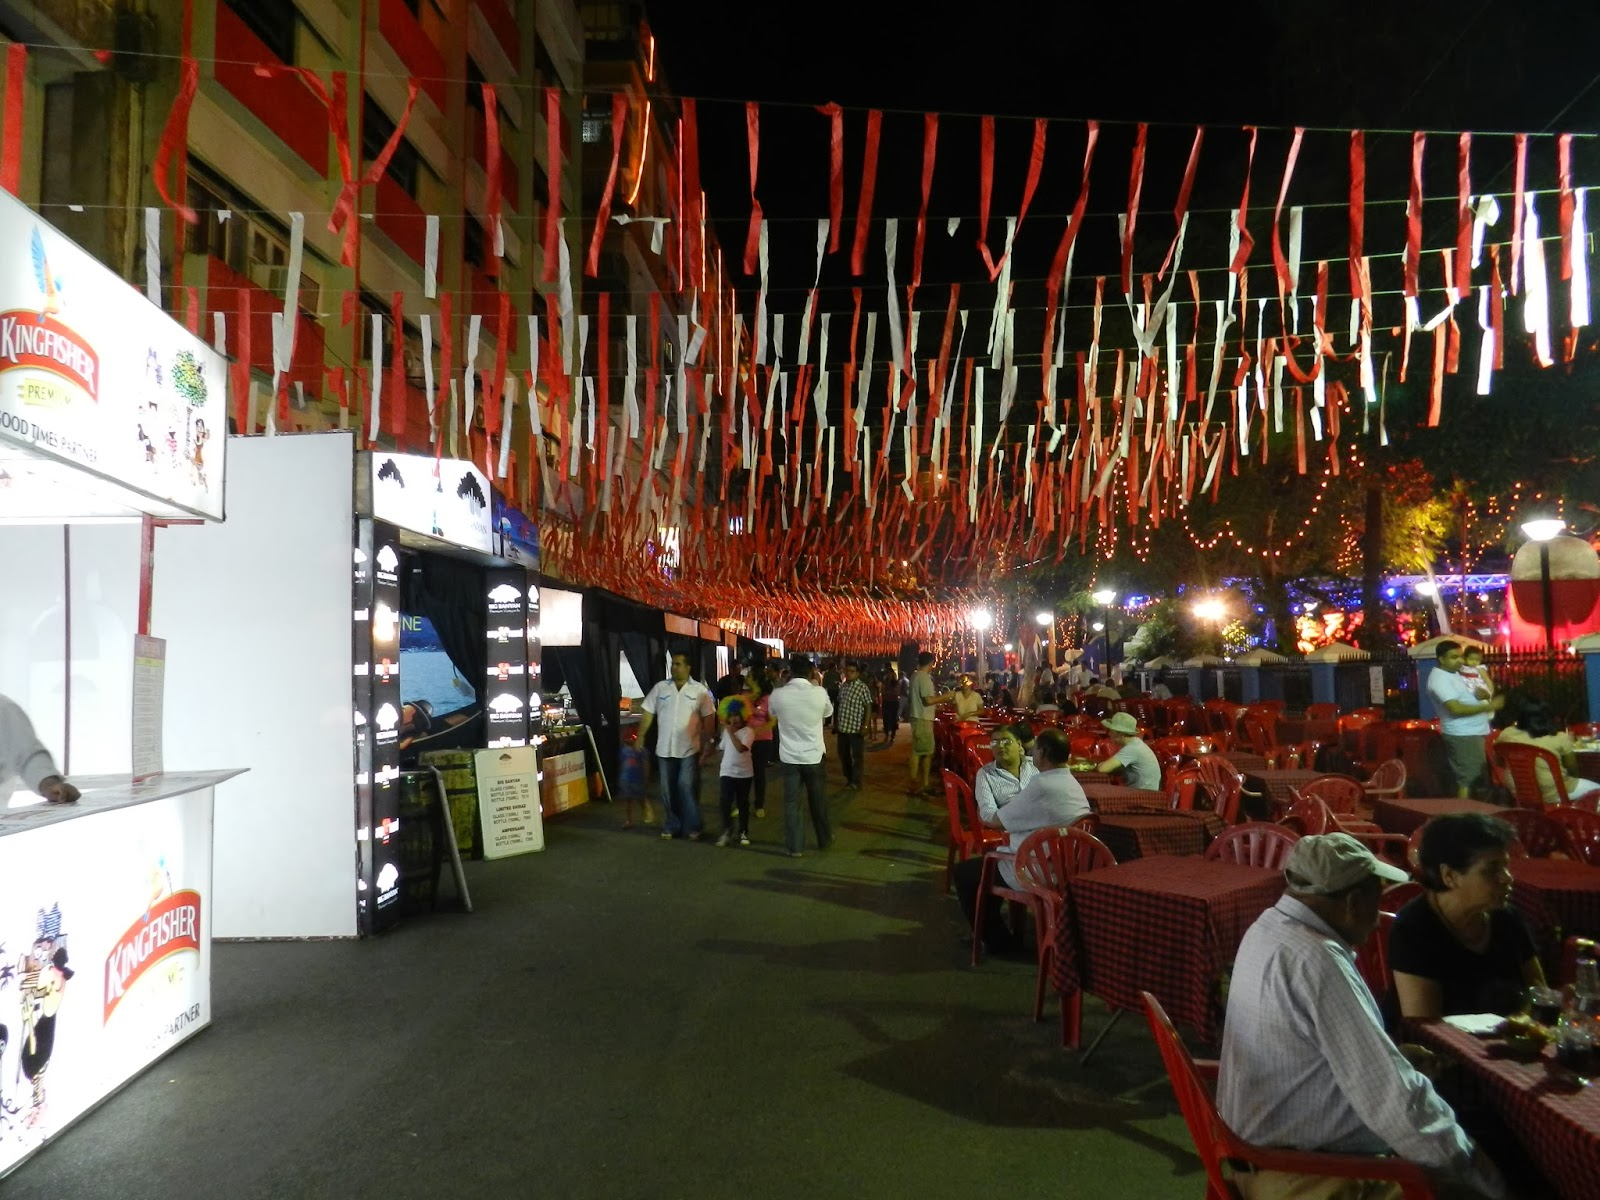 Main Attractions for the Goa Carnival Food and Cultural Festival 2014